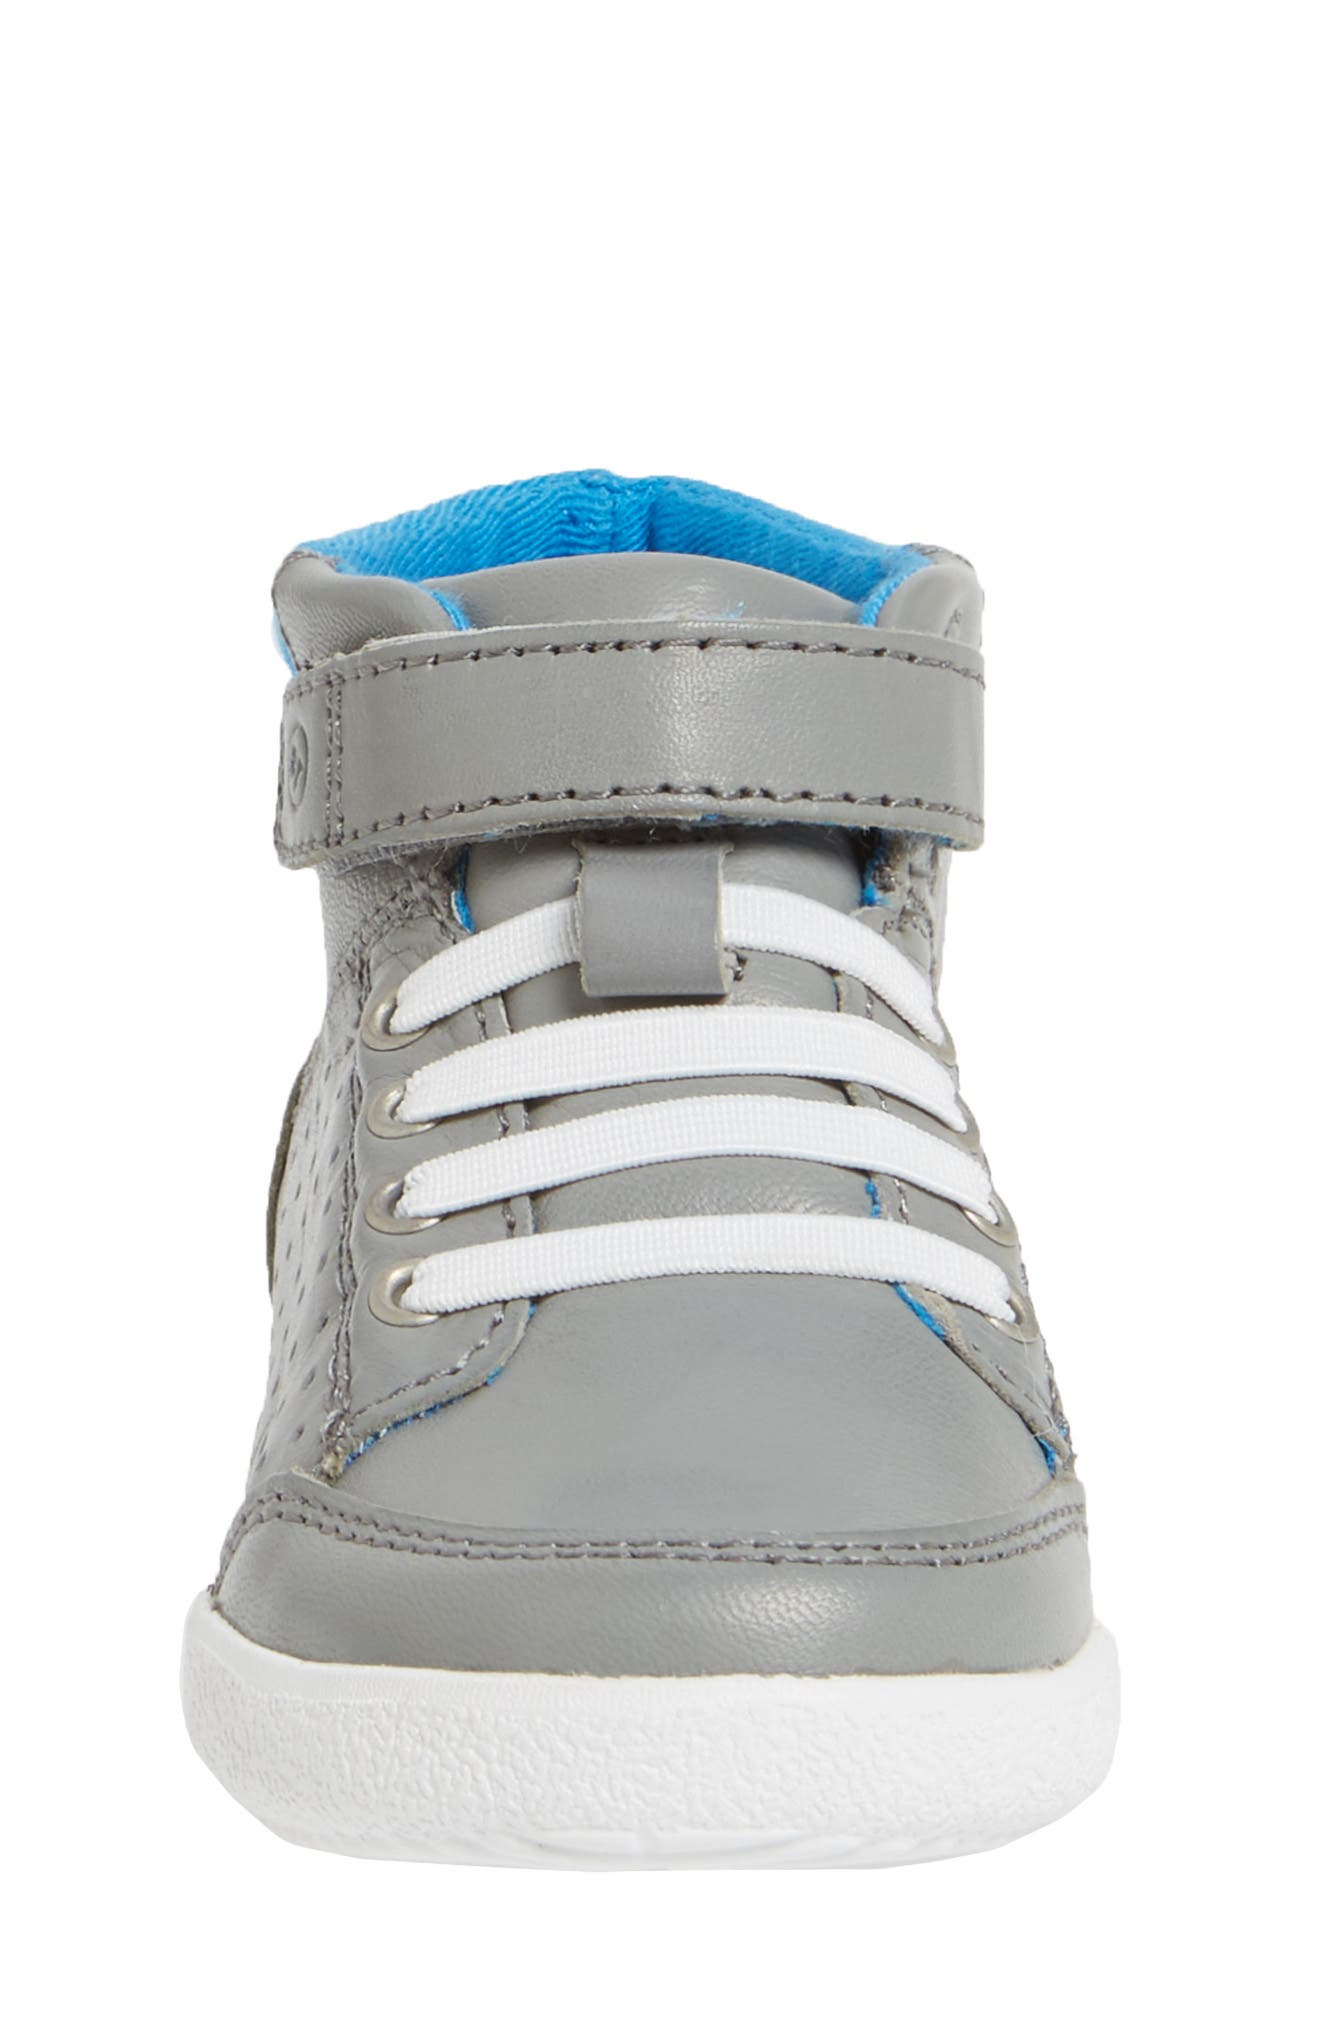 Stone High Top Sneaker,                             Alternate thumbnail 3, color,                             020